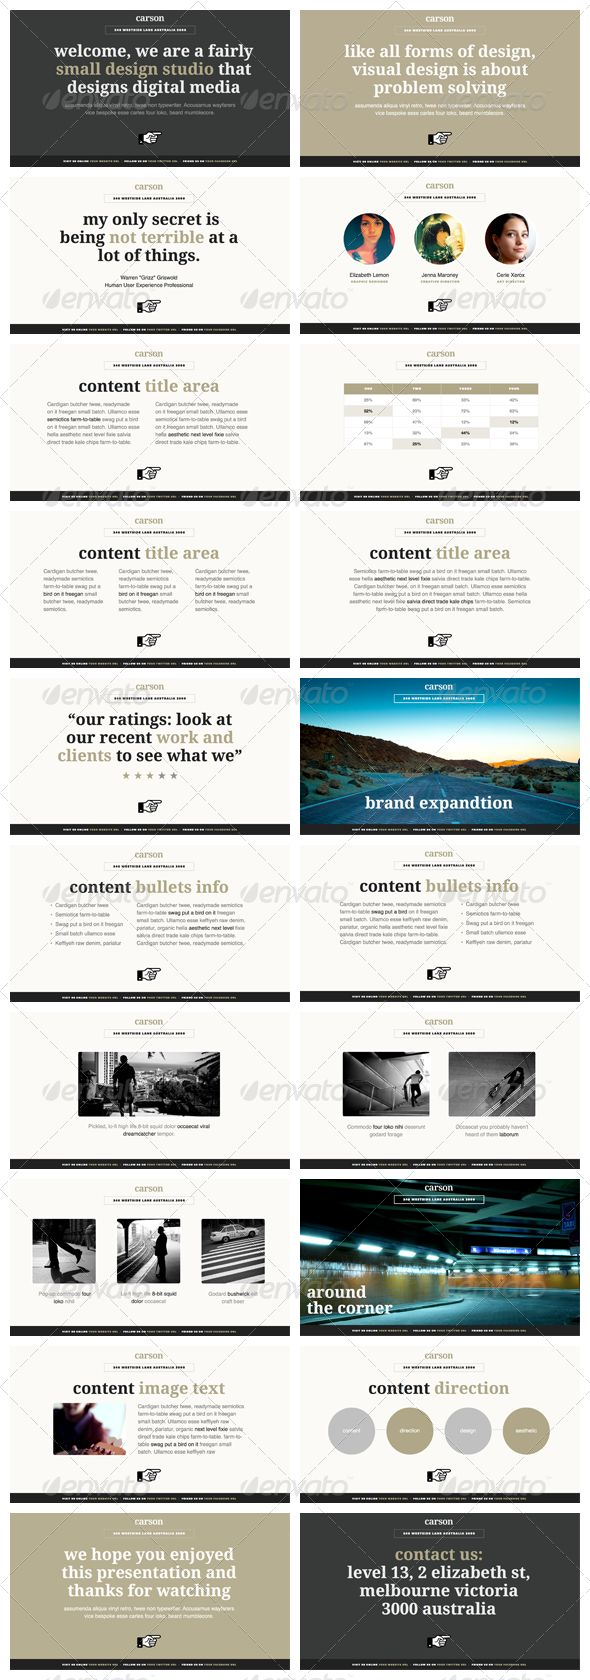 Carson - Keynote Presentation Template | Keynote theme / template